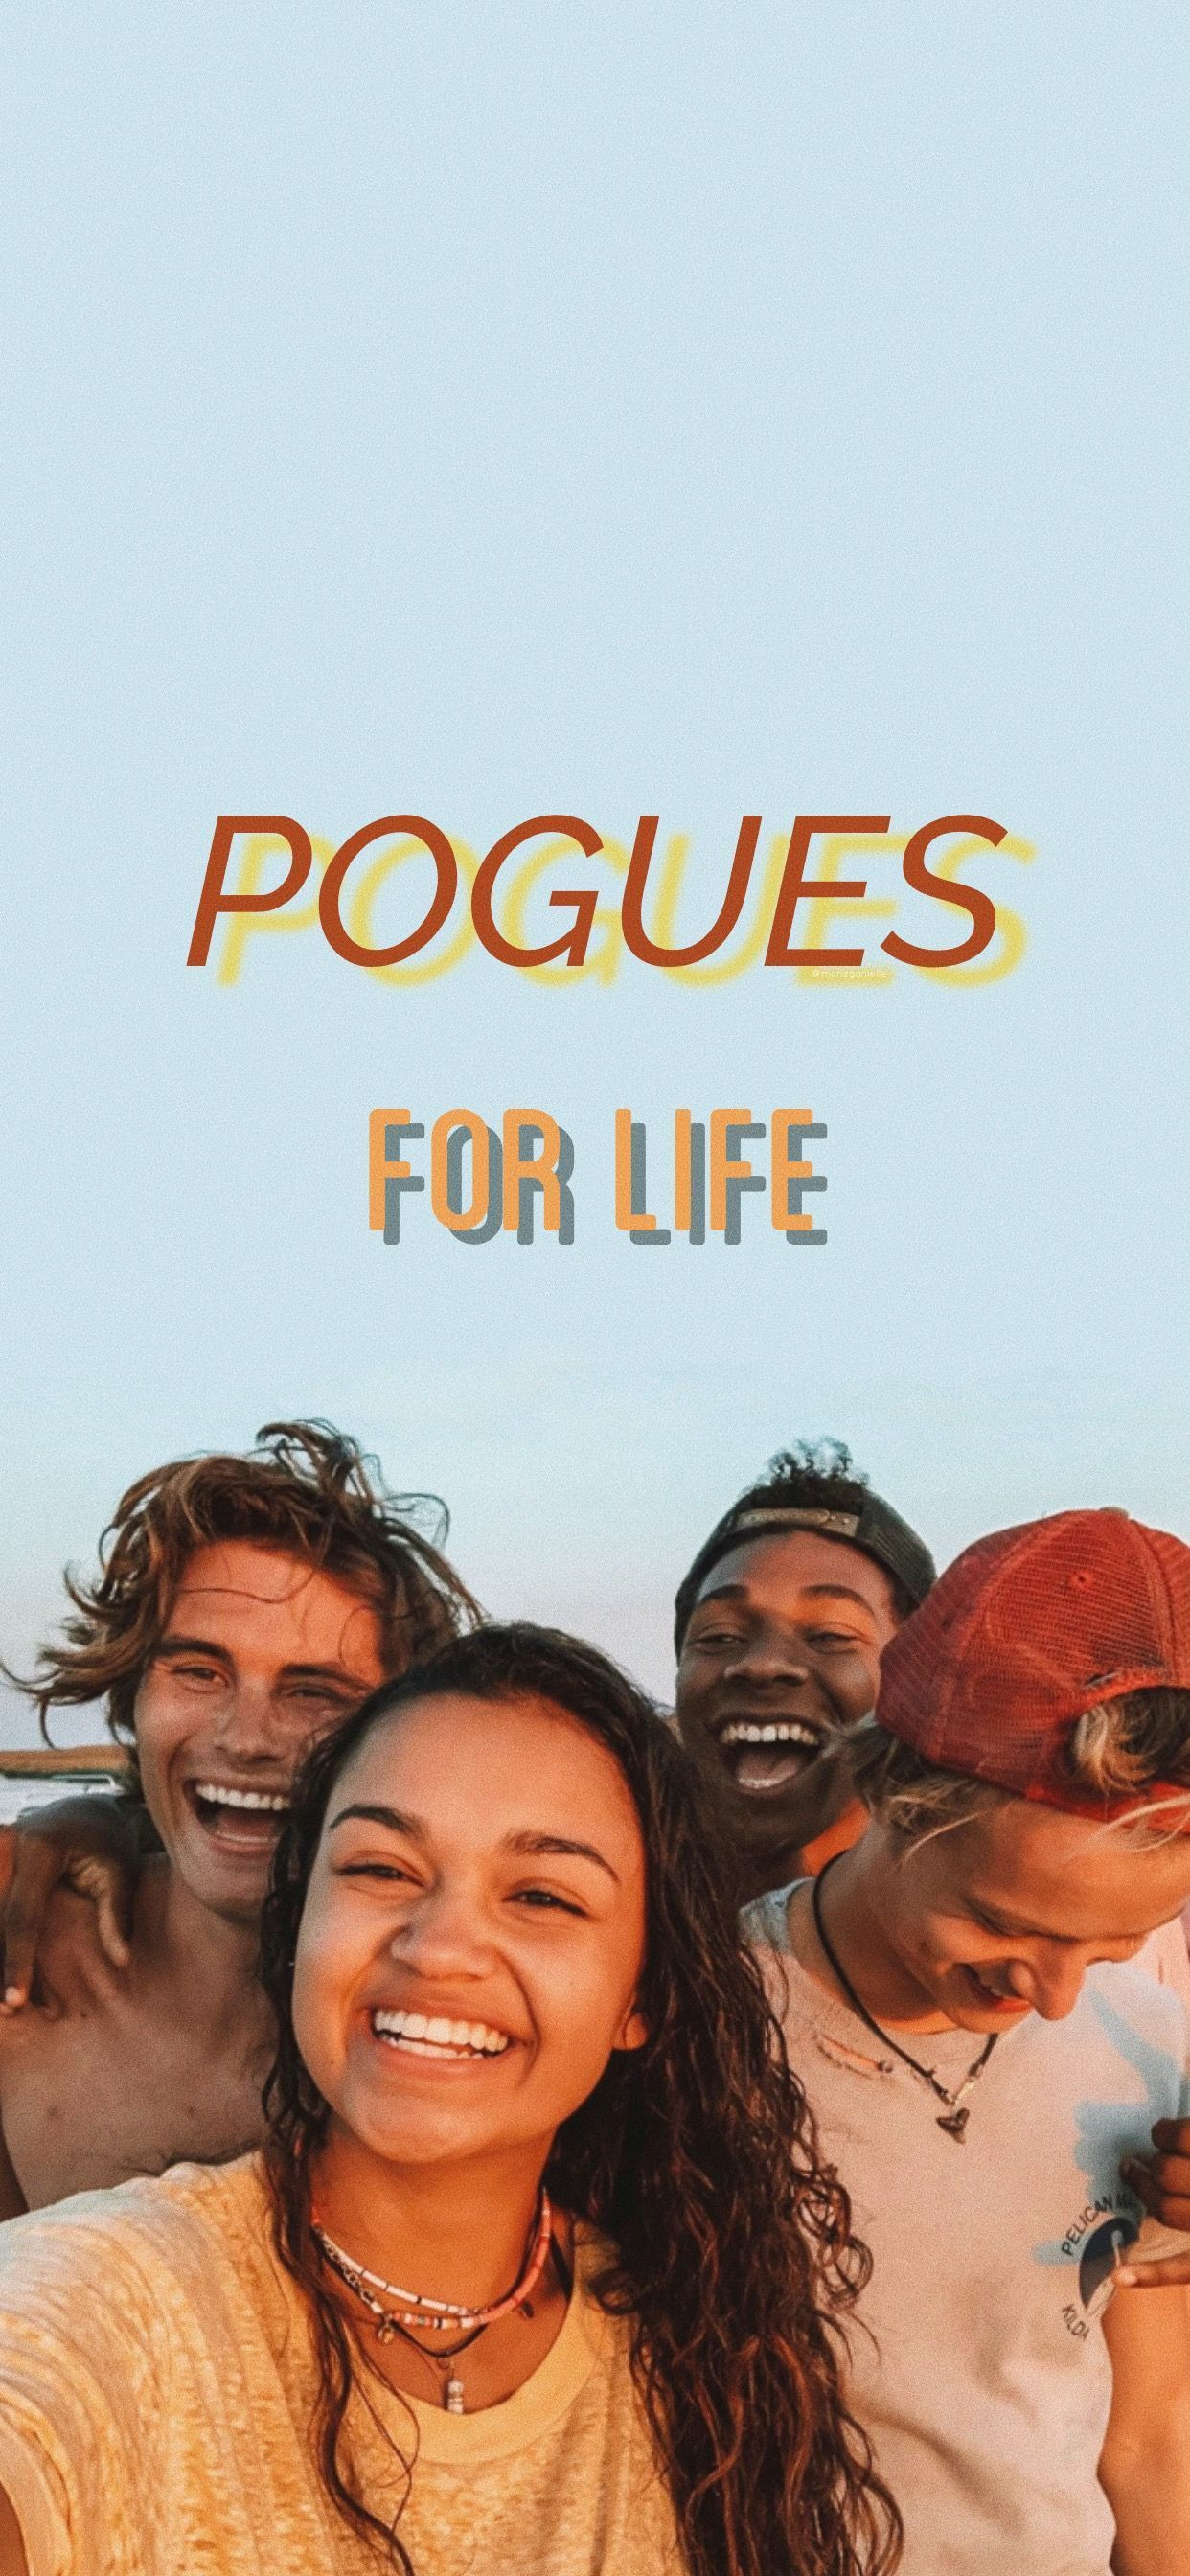 How Old Is The Cast Of Outer Banks On Netflix Outer Banks Cast Real Ages The Pogues Outer Banks Outer